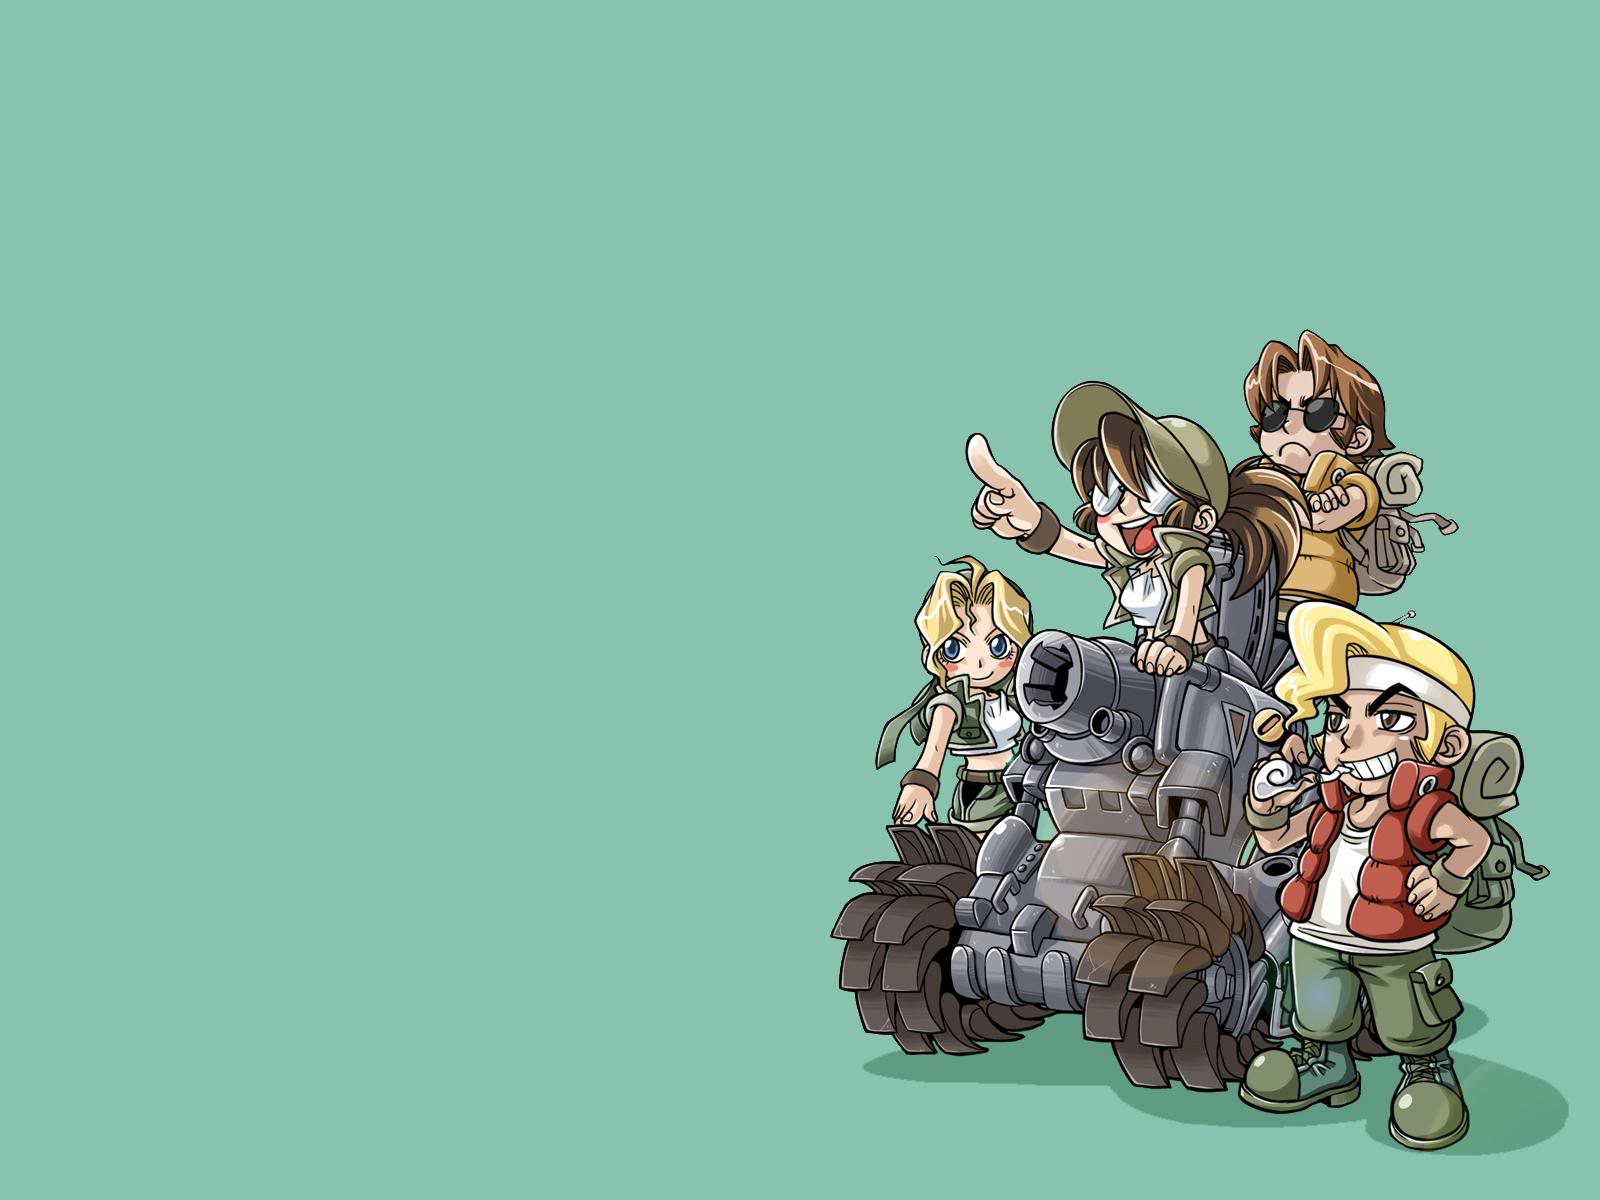 Cute Cartoon Horse Wallpaper Download Metal Slug Wallpaper Gallery